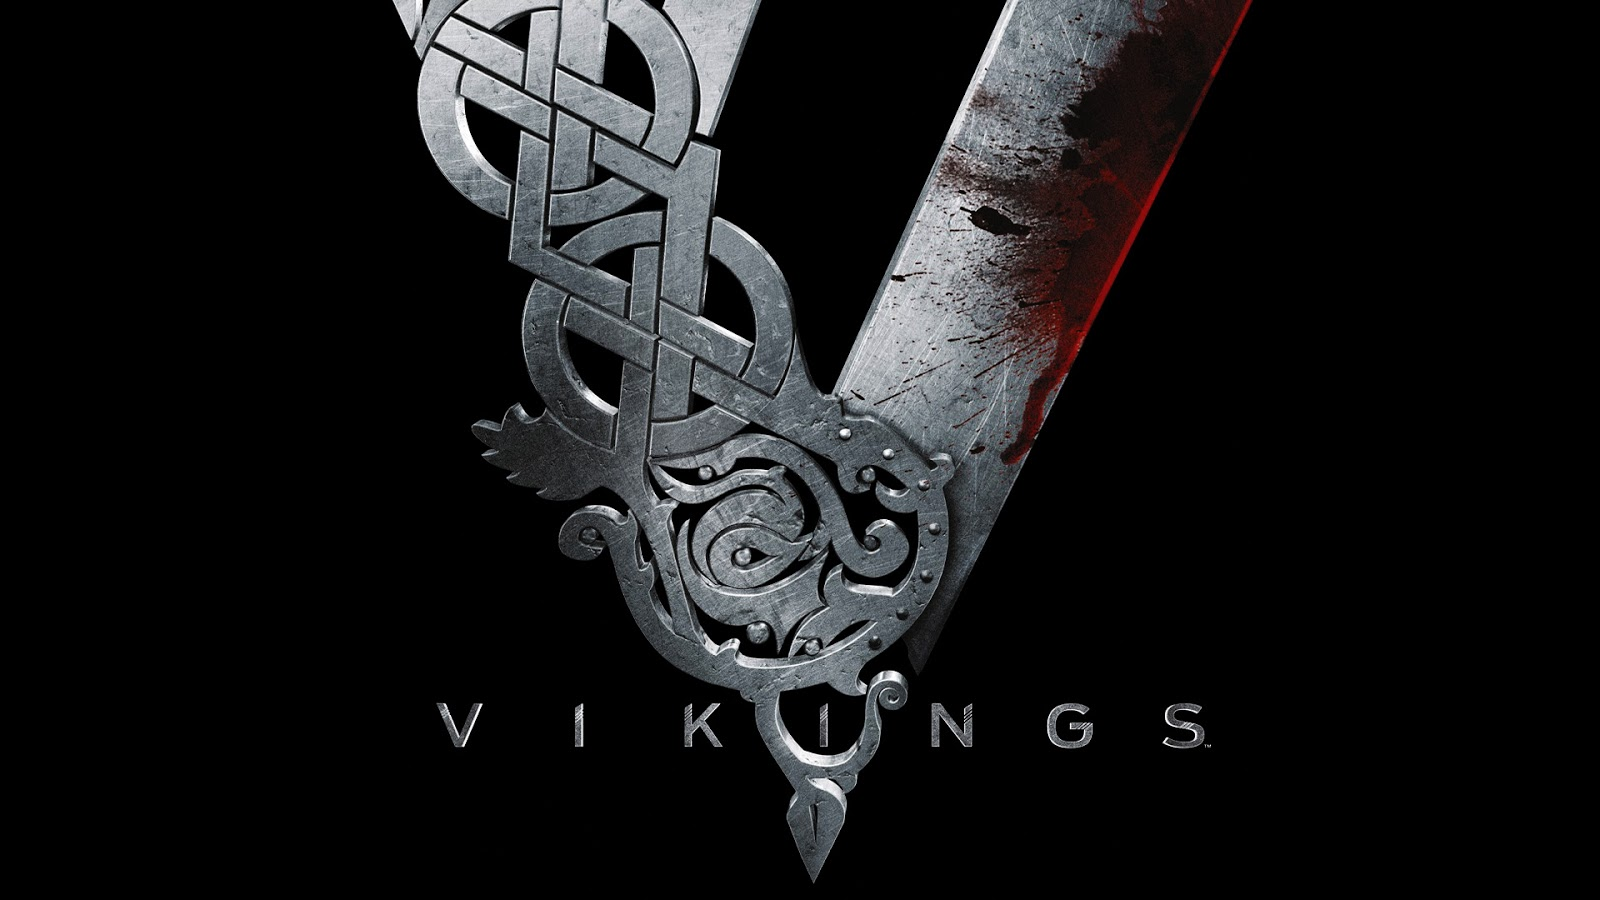 Vikings Tv Series Bloody Metal Logo HD WallpaperVikings Logo Wallpaper